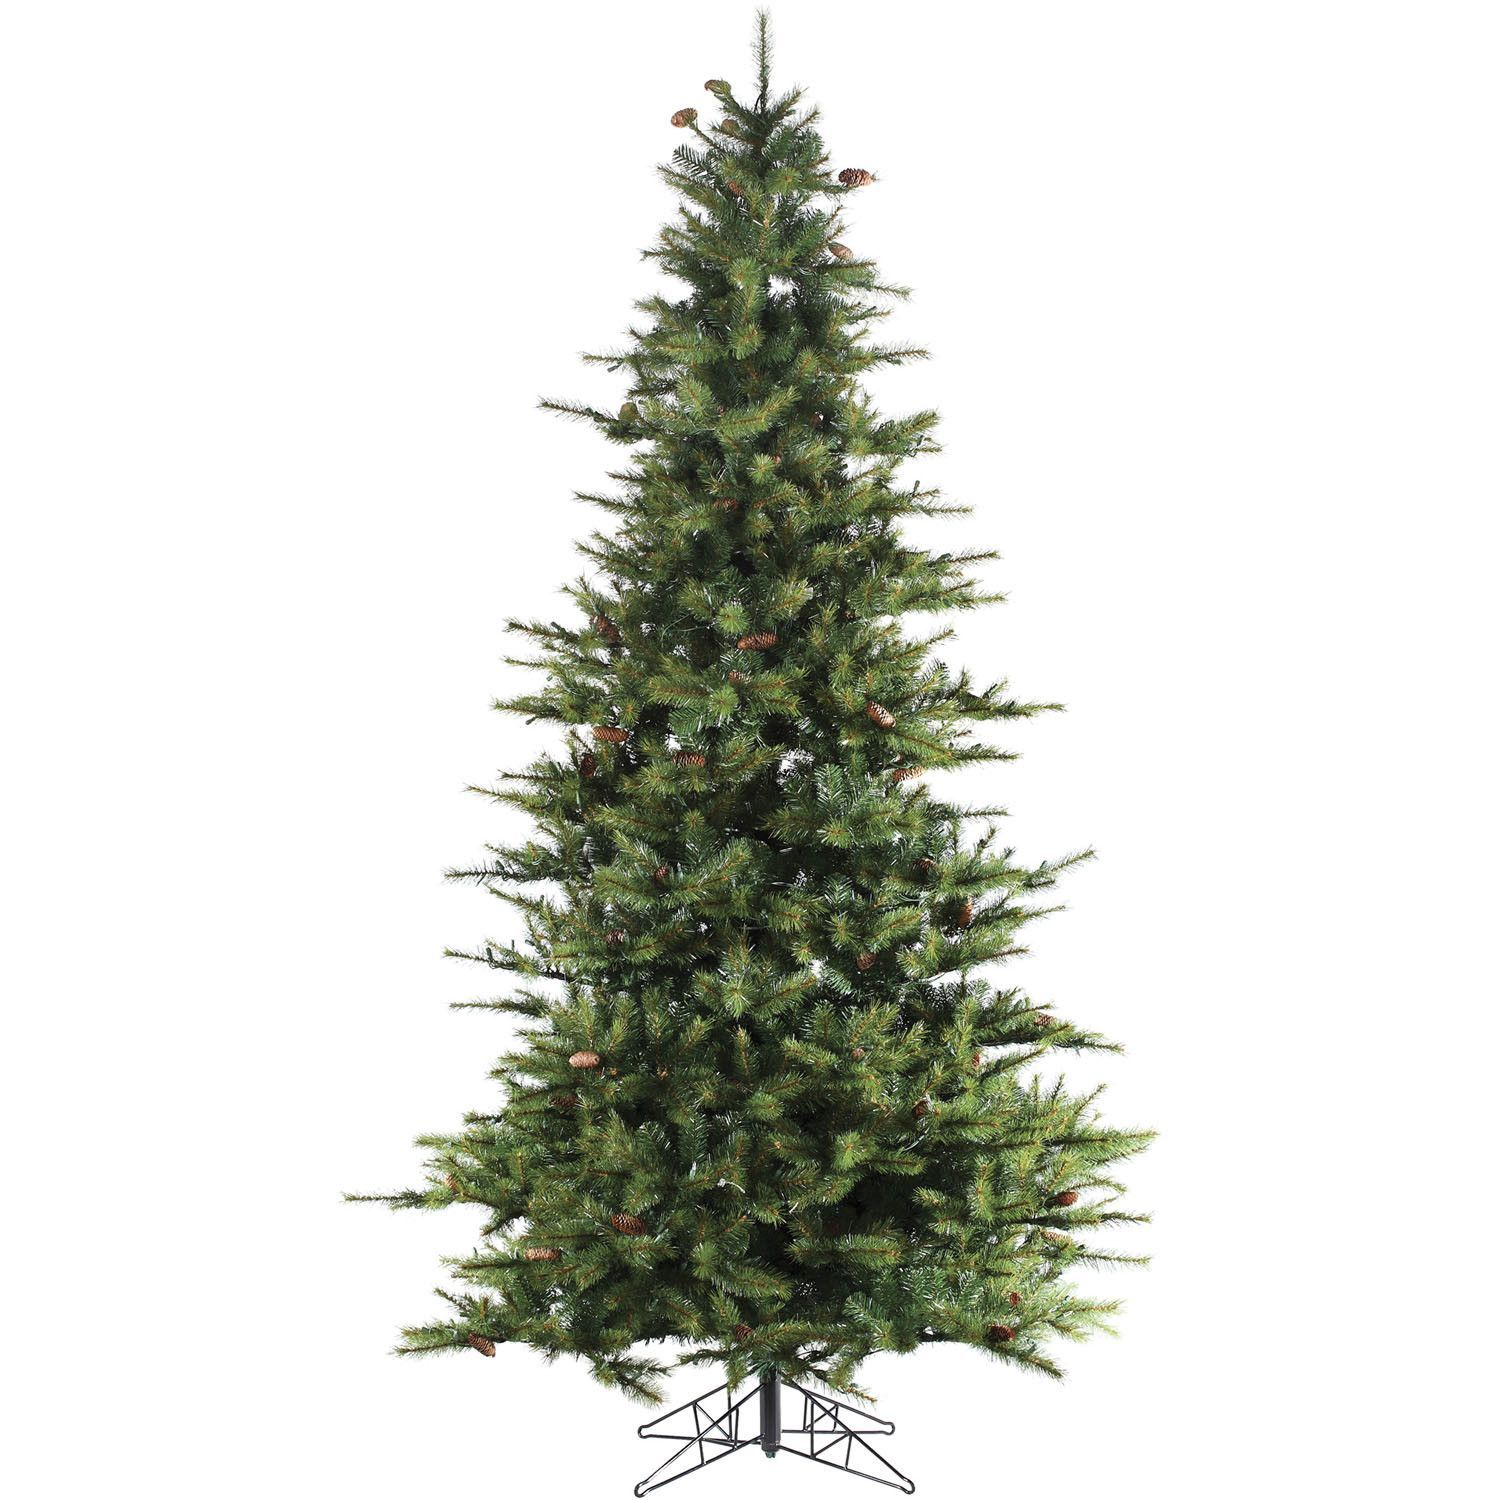 Southern Peace Pine 9 Green Artificial Christmas Tree With Stand Unlit Christmas Trees Artificial Christmas Tree Led Christmas Tree